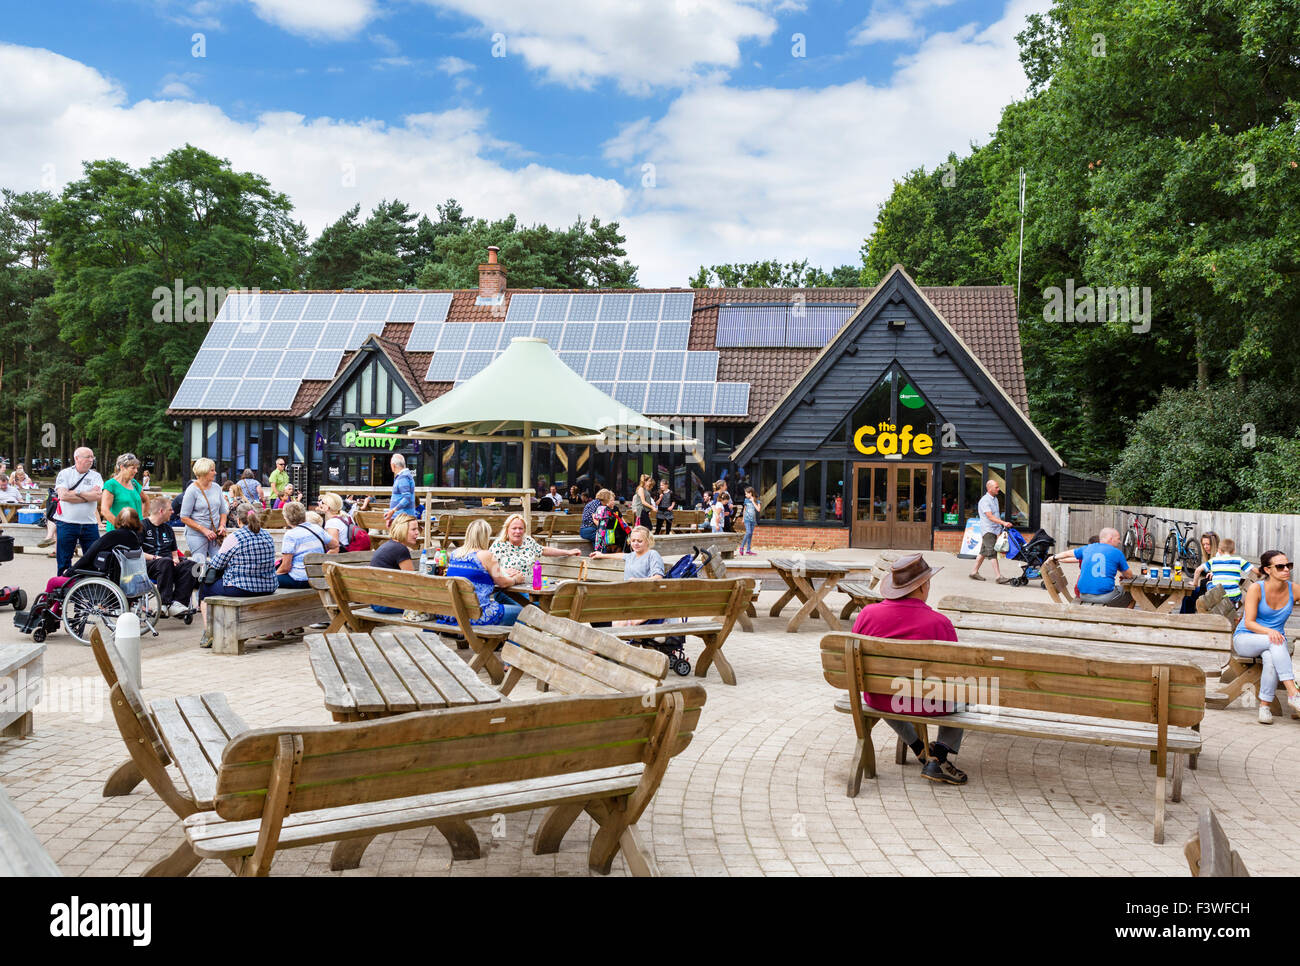 Cafe at High Lodge Visitors Centre in Thetford Forest, Norfolk, England, UK - Stock Image